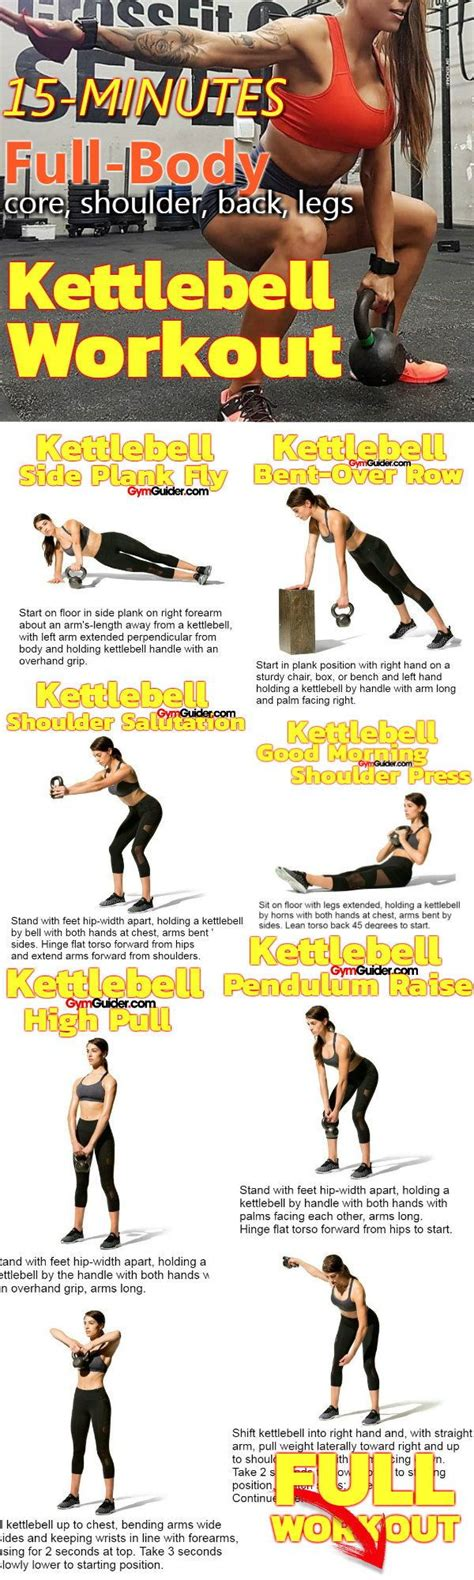 kettlebell exercises workout arms effective workouts most toned gymguider strength exercise meaning upper